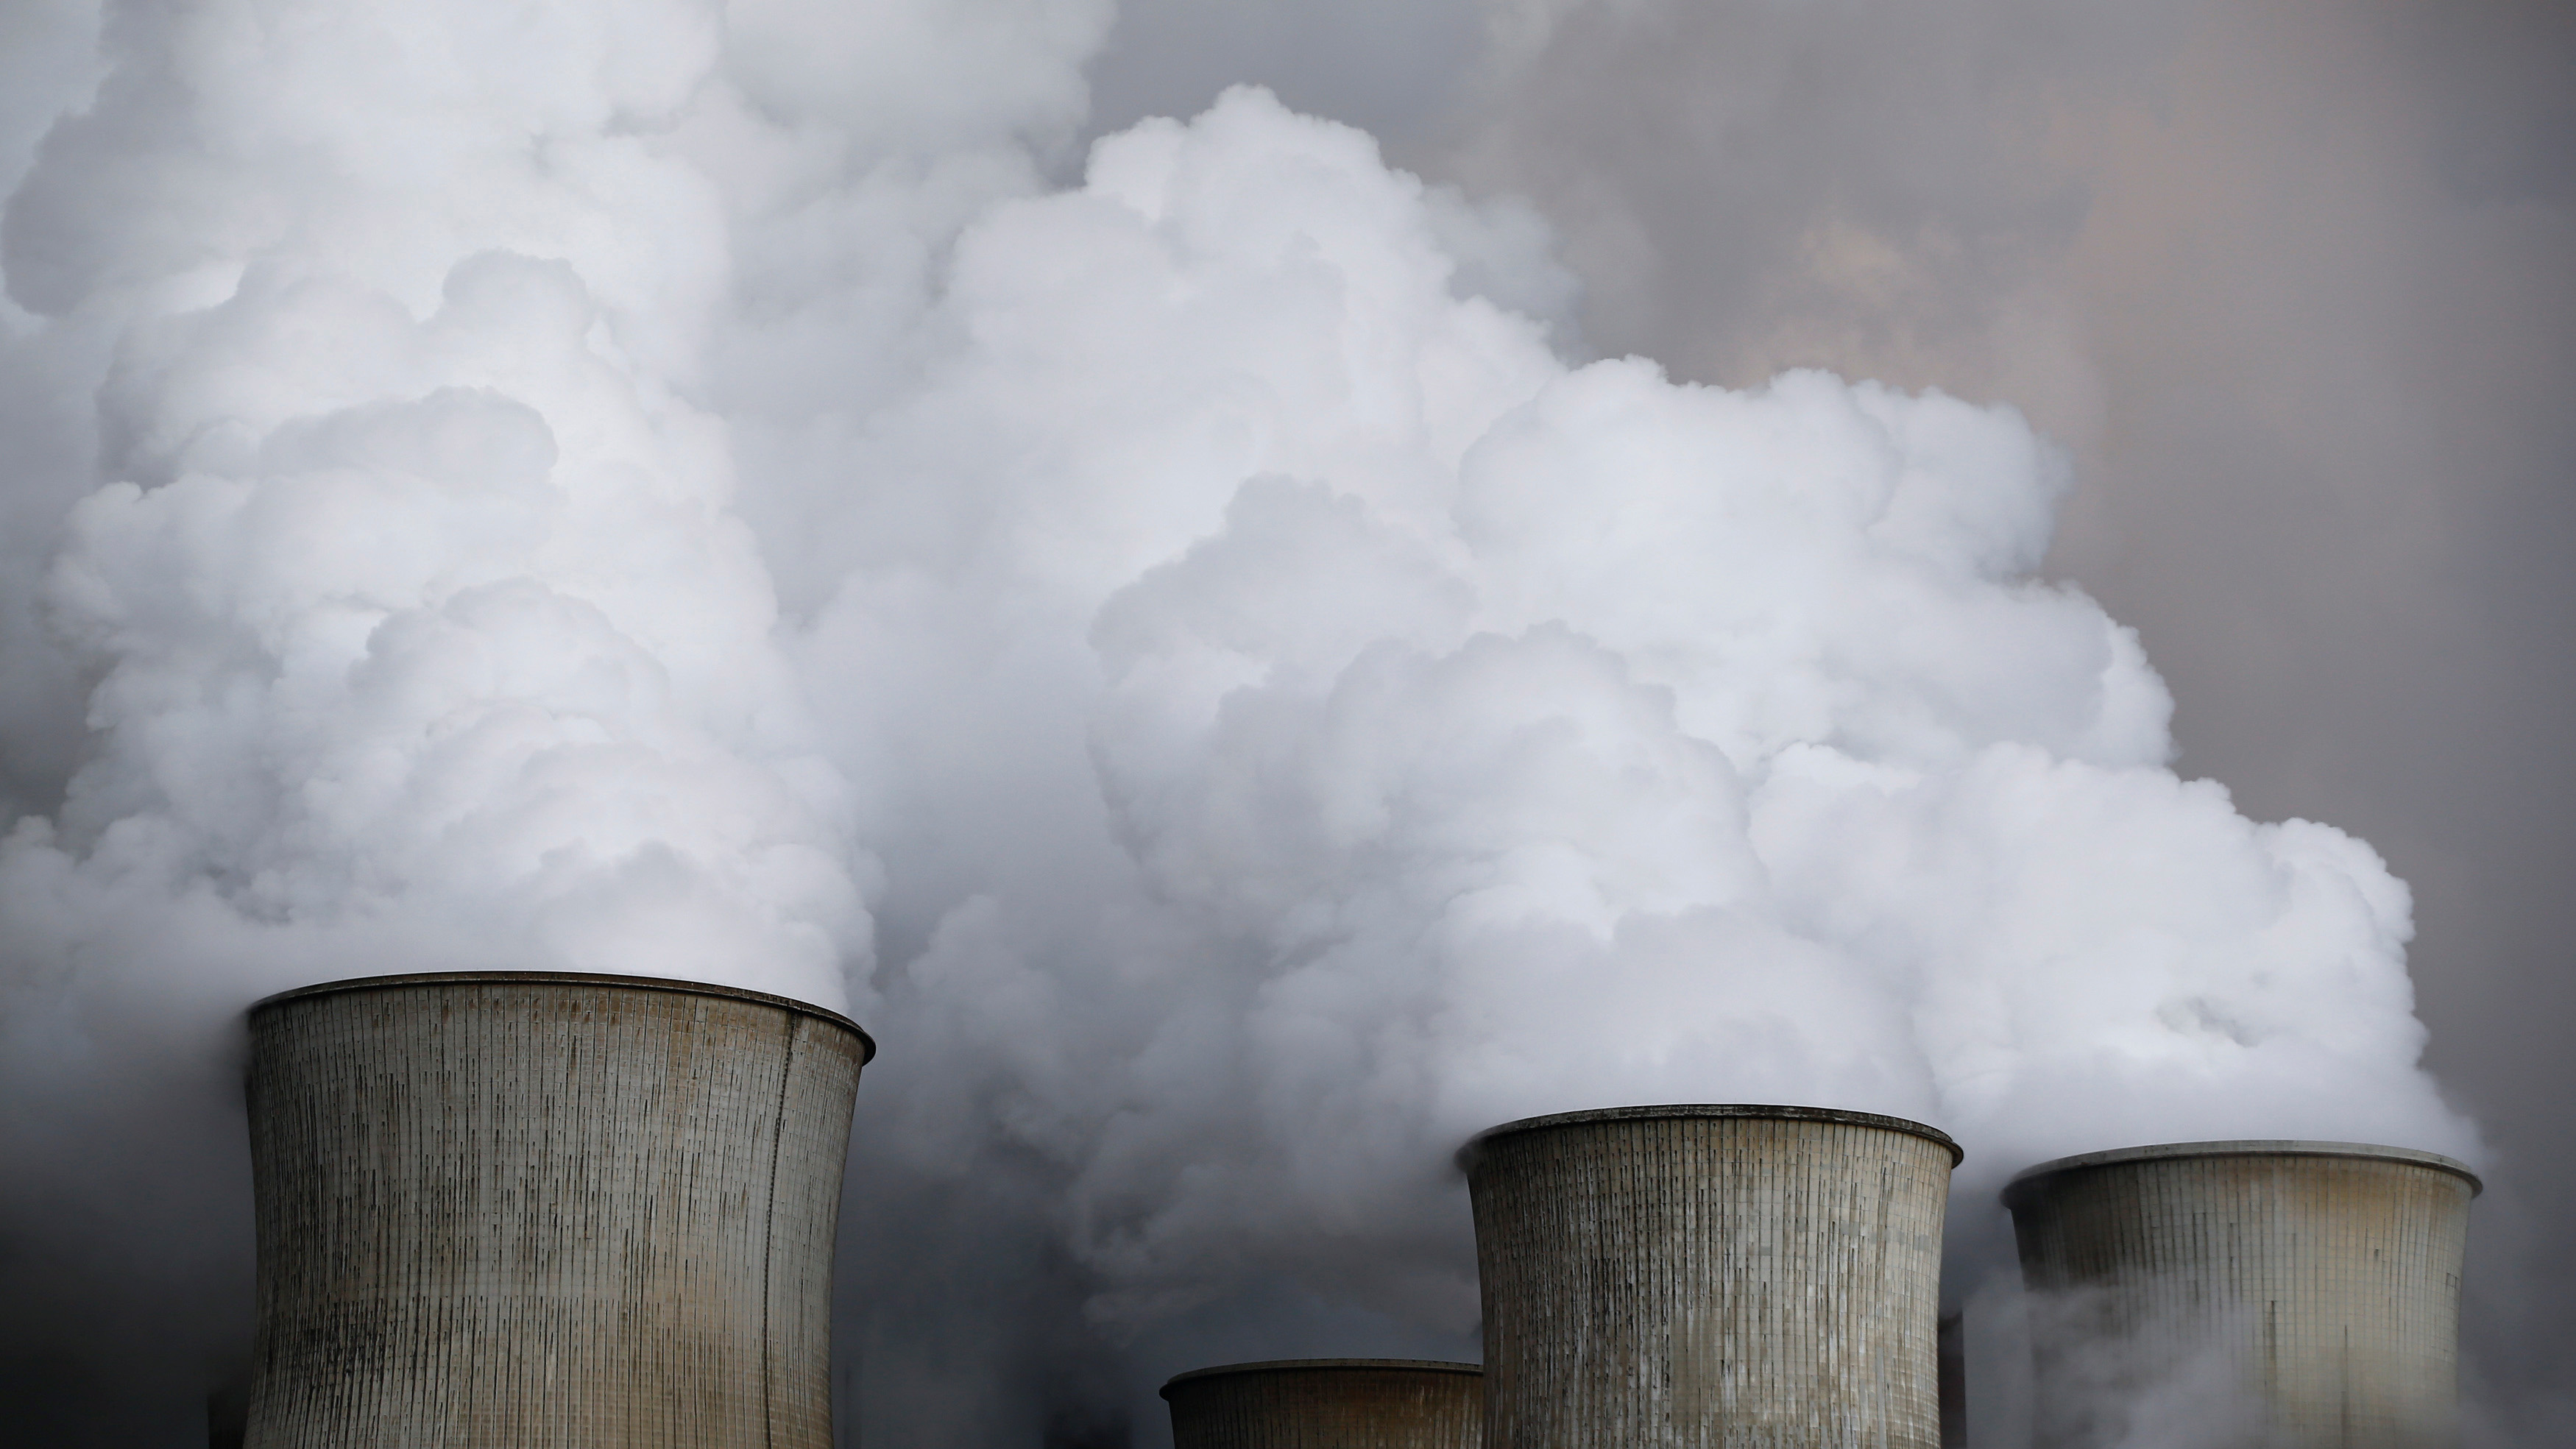 Steam rises from the cooling towers of the coal power plant of RWE, one of Europe's biggest electricity and gas companies in Niederaussem, north-west of Cologne, Germany. Picture taken March 3, 2016. REUTERS/Wolfgang Rattay/File Photo - RC1F95D28AD0